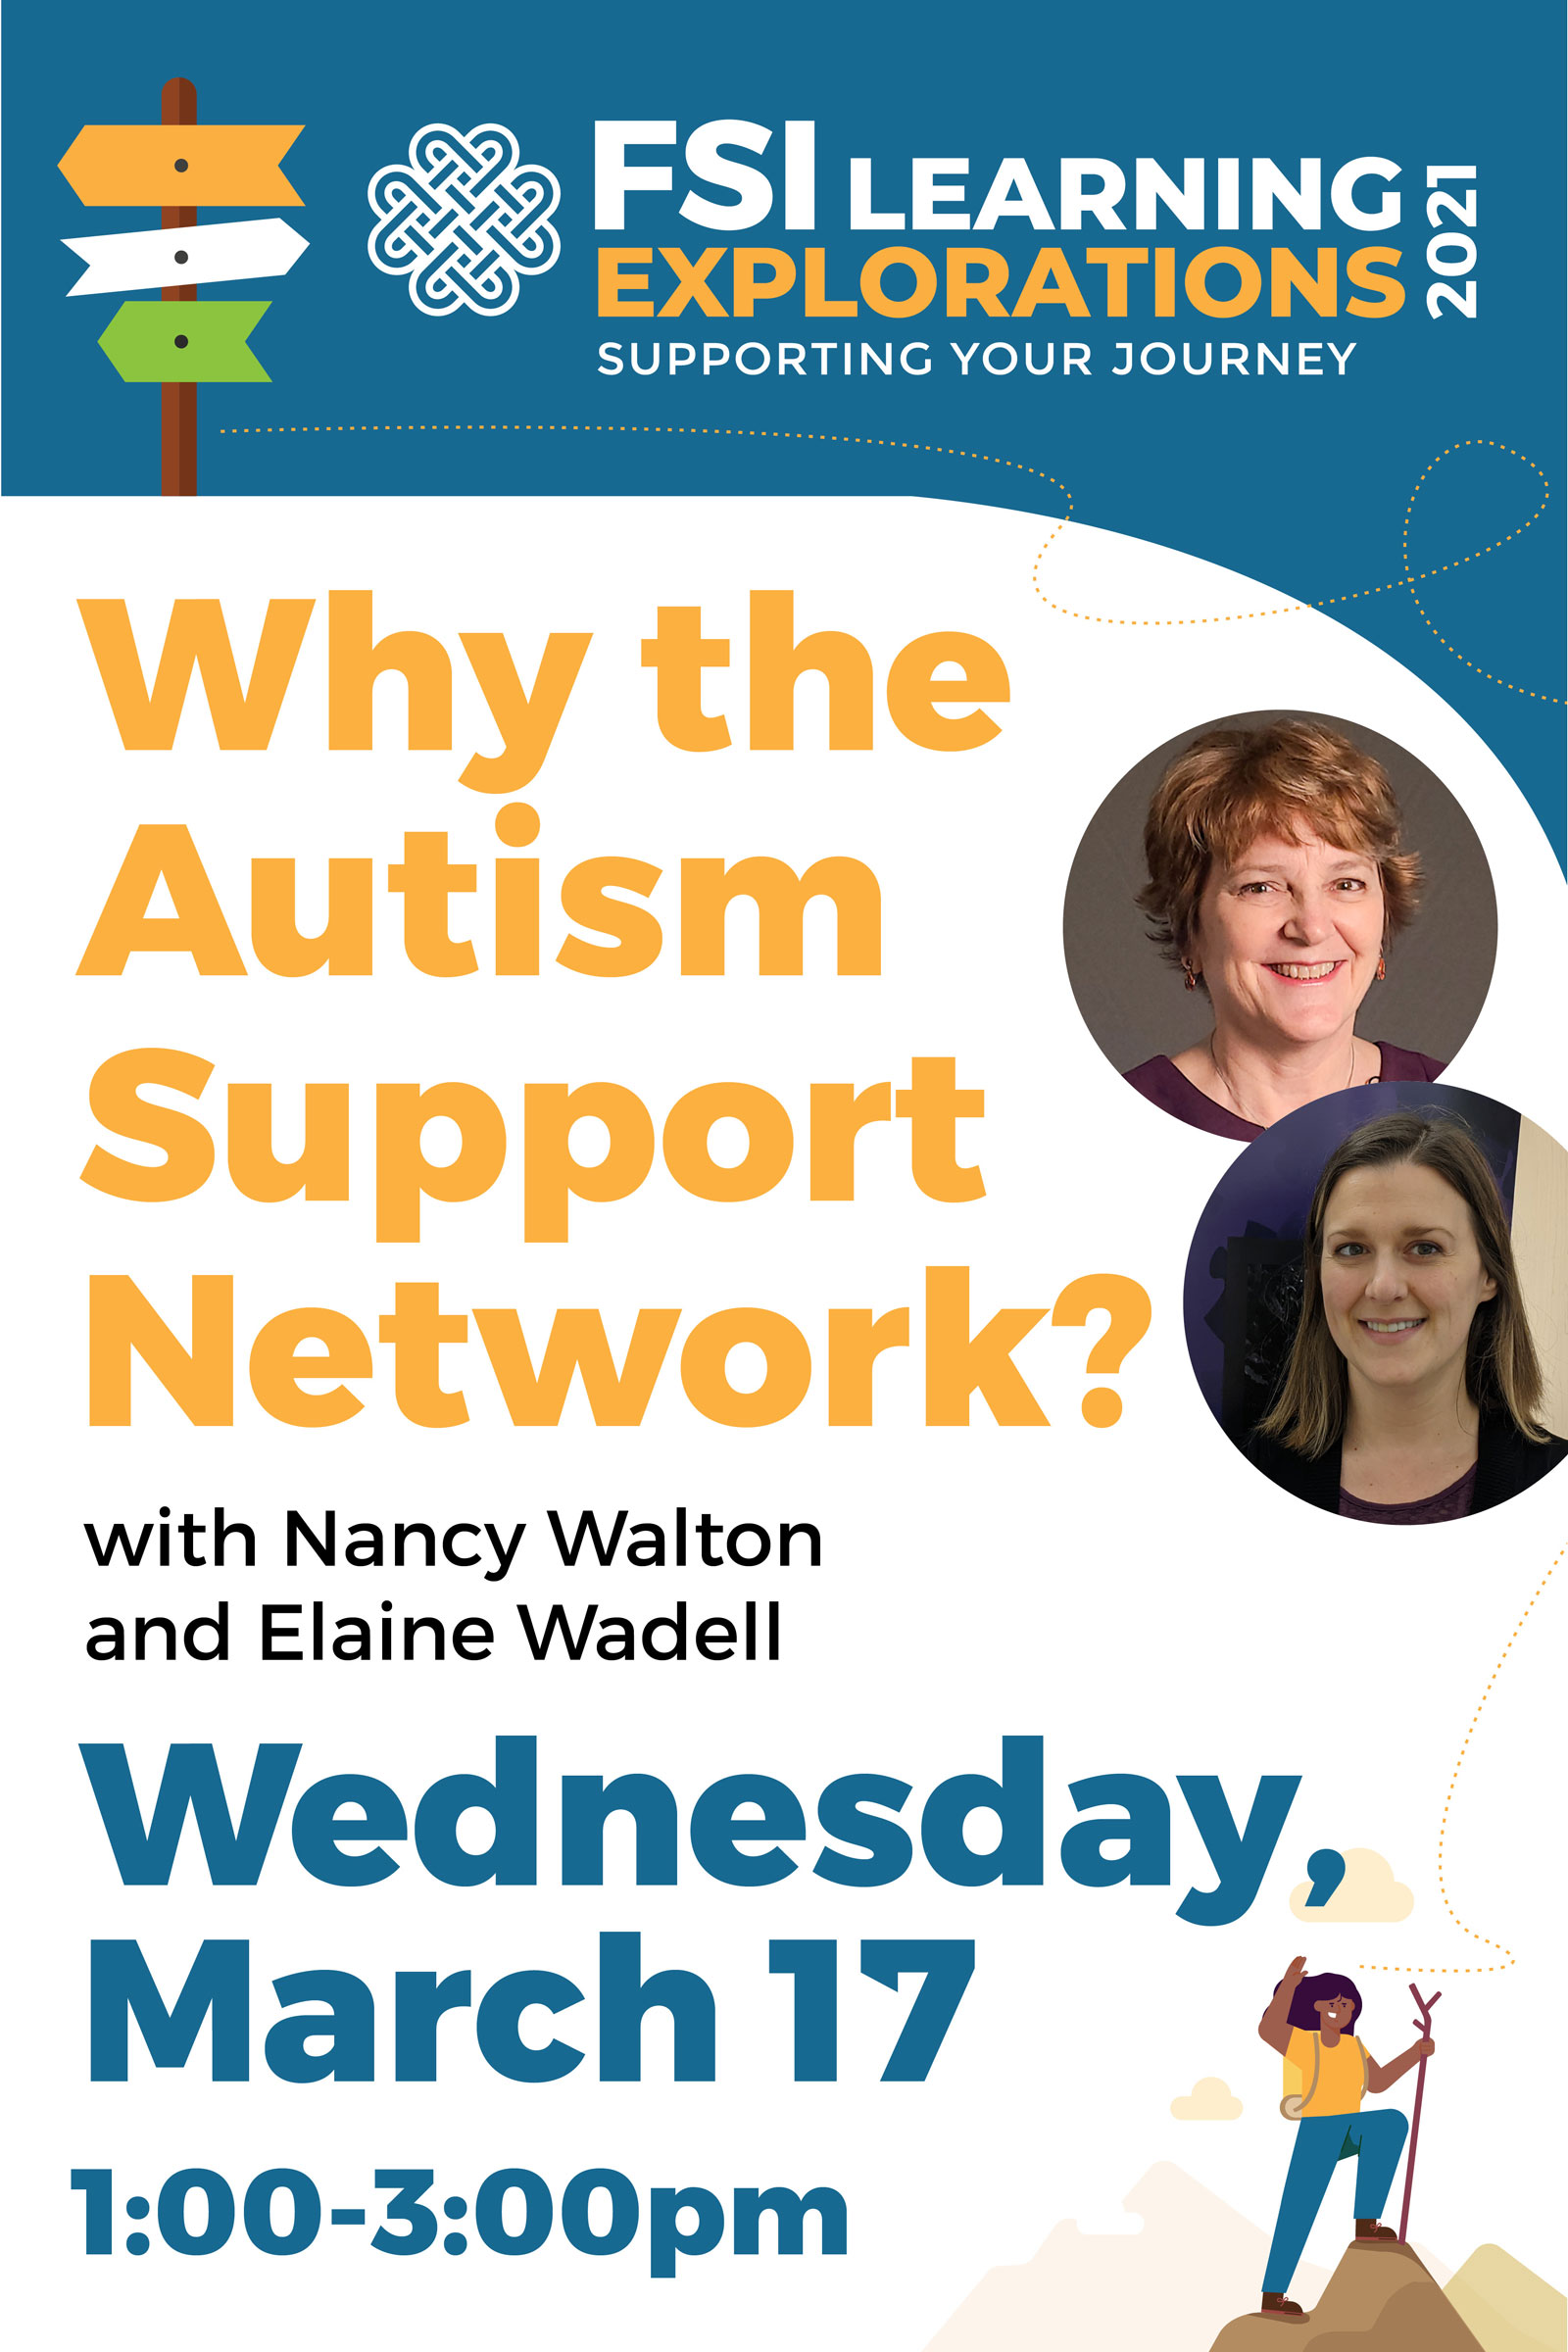 FSI Learning Explorations -  Why the Autism Support Network?